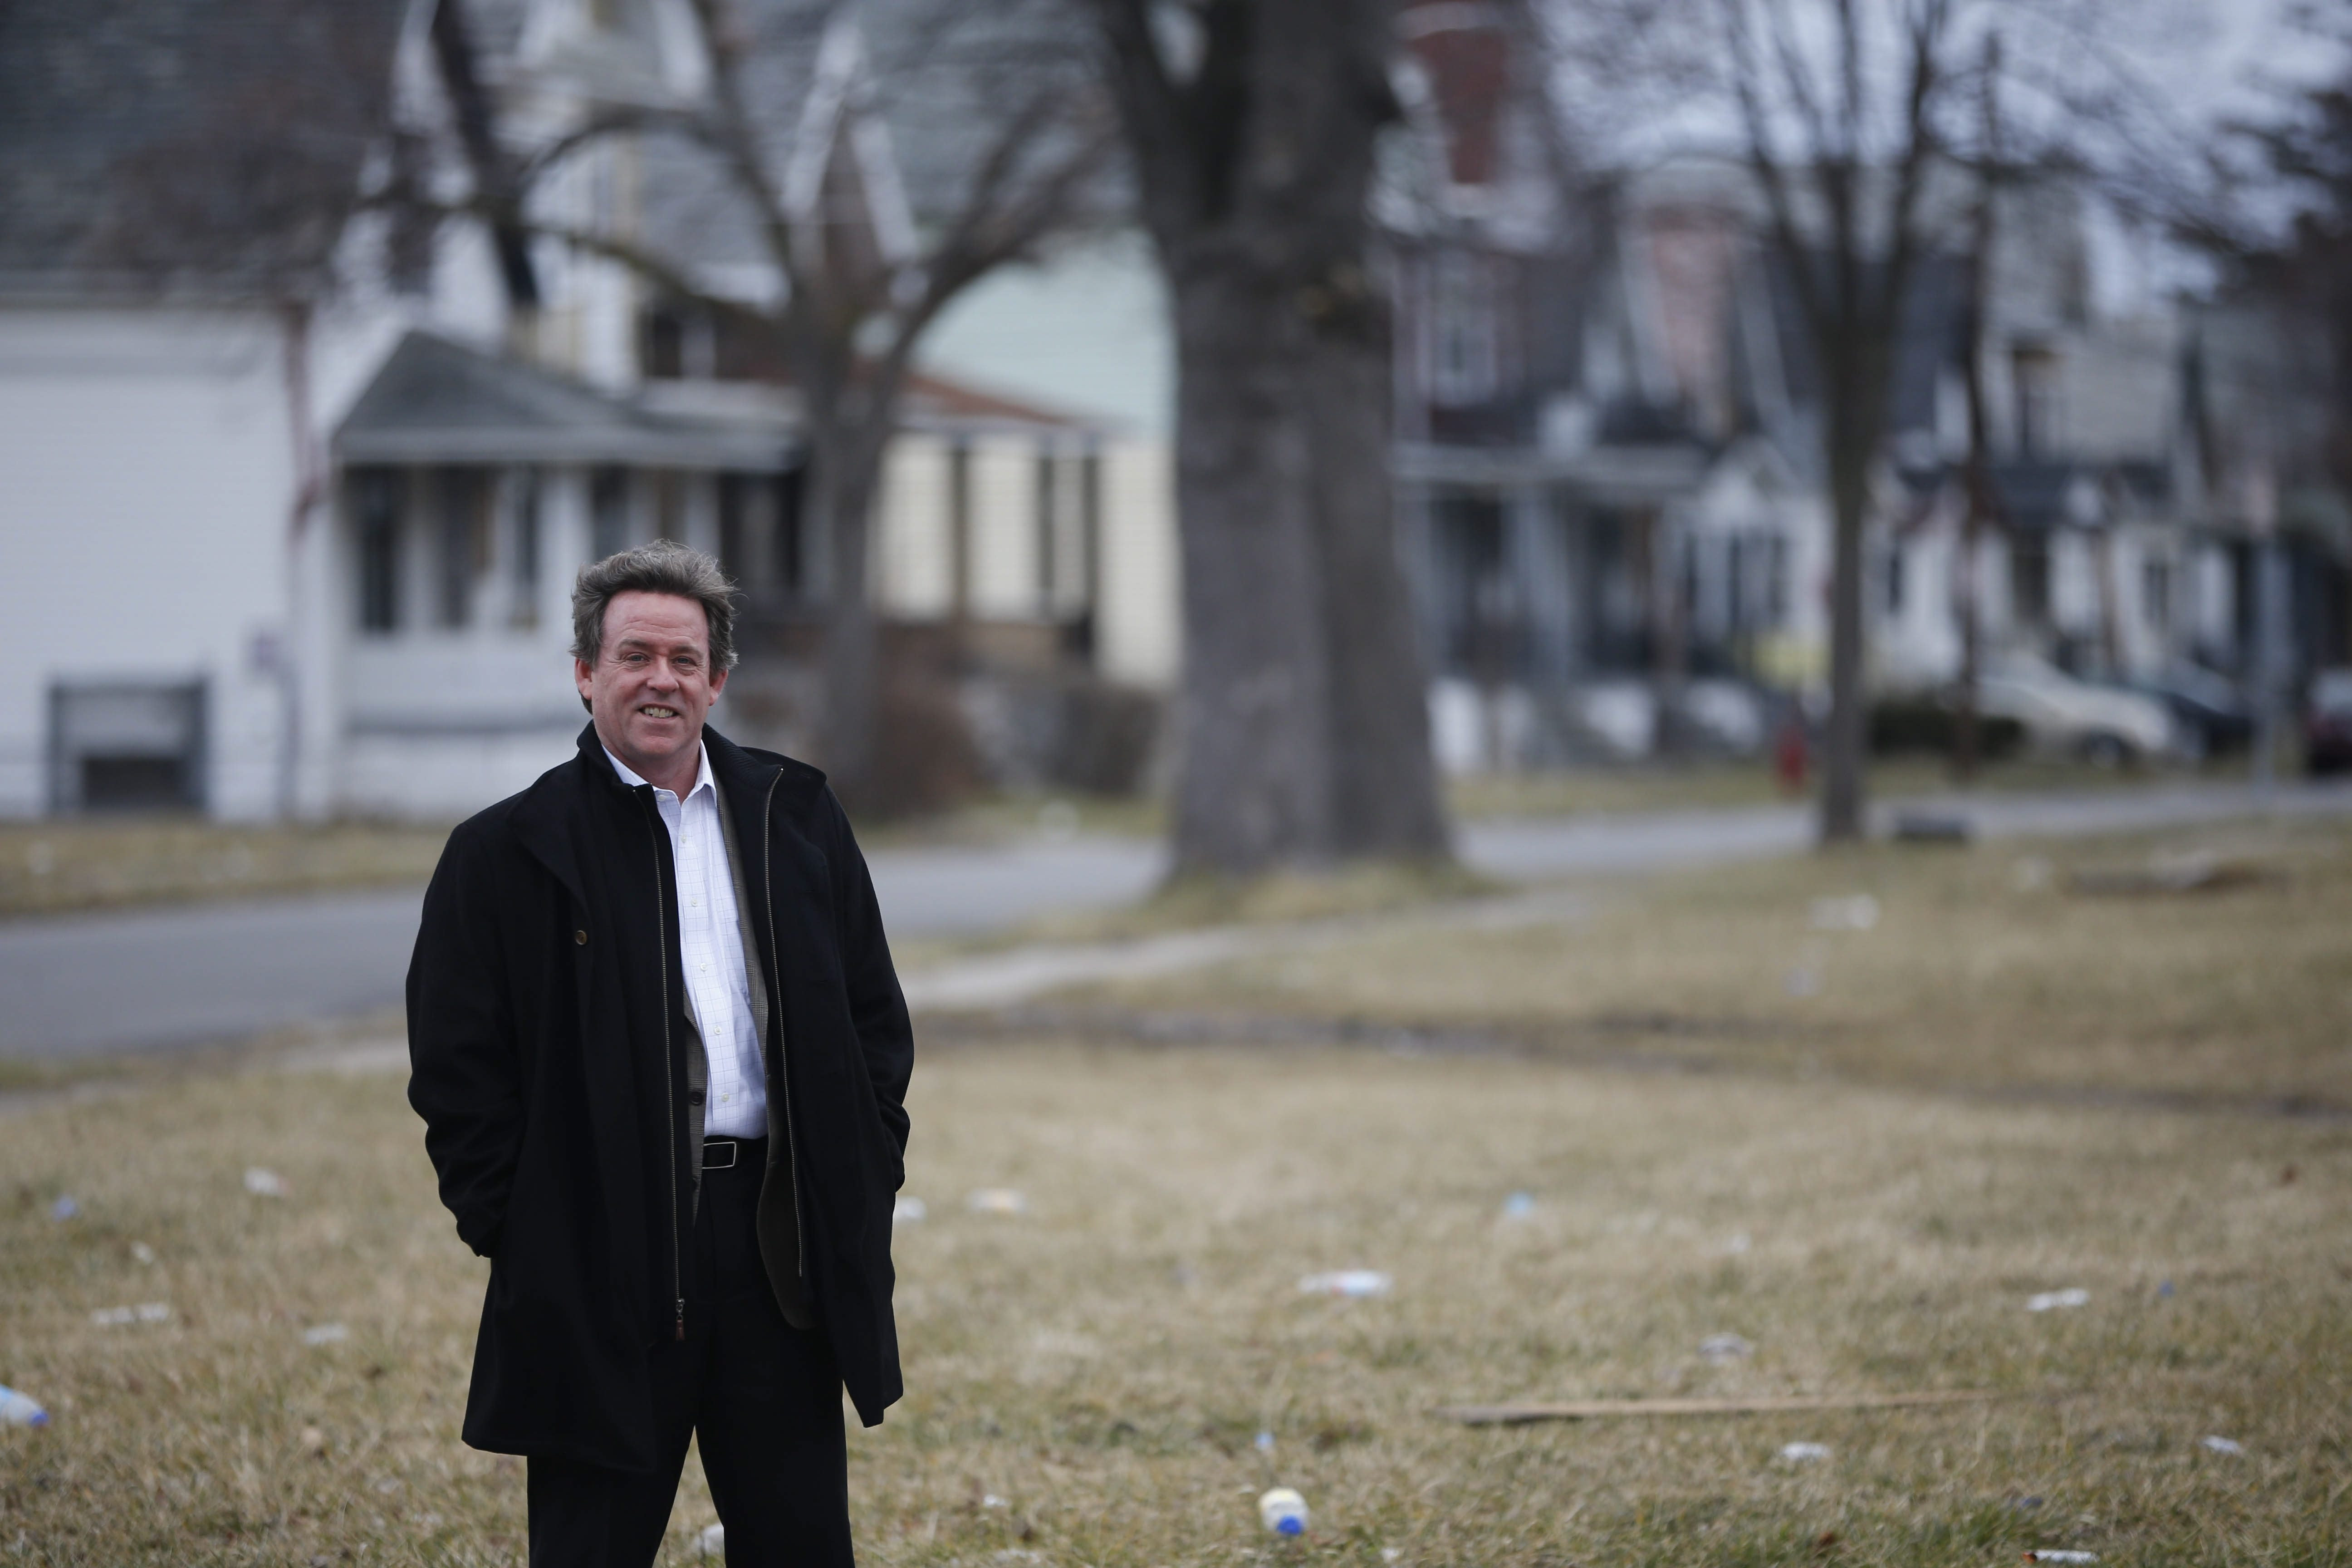 John Somers, owner of Harmac Medical Products, has shown deep concern for the Bailey Avenue neighborhood around his company.  (Derek Gee/Buffalo News)